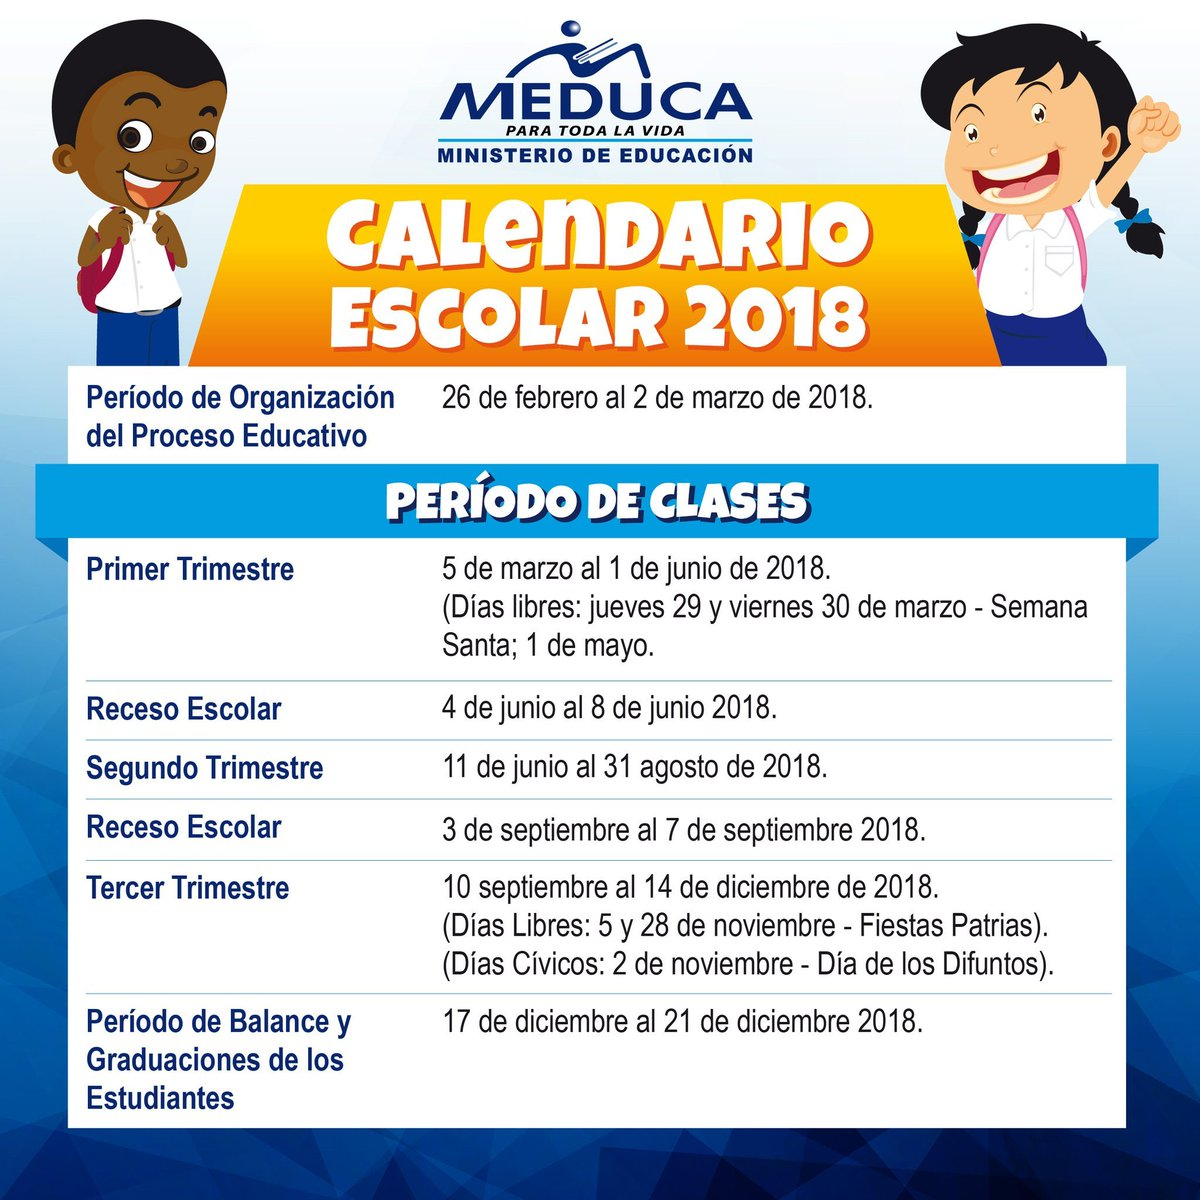 Calendario Escolar 2018 Panama.Radio Mia Panama On Twitter Calendario Escolar 2018